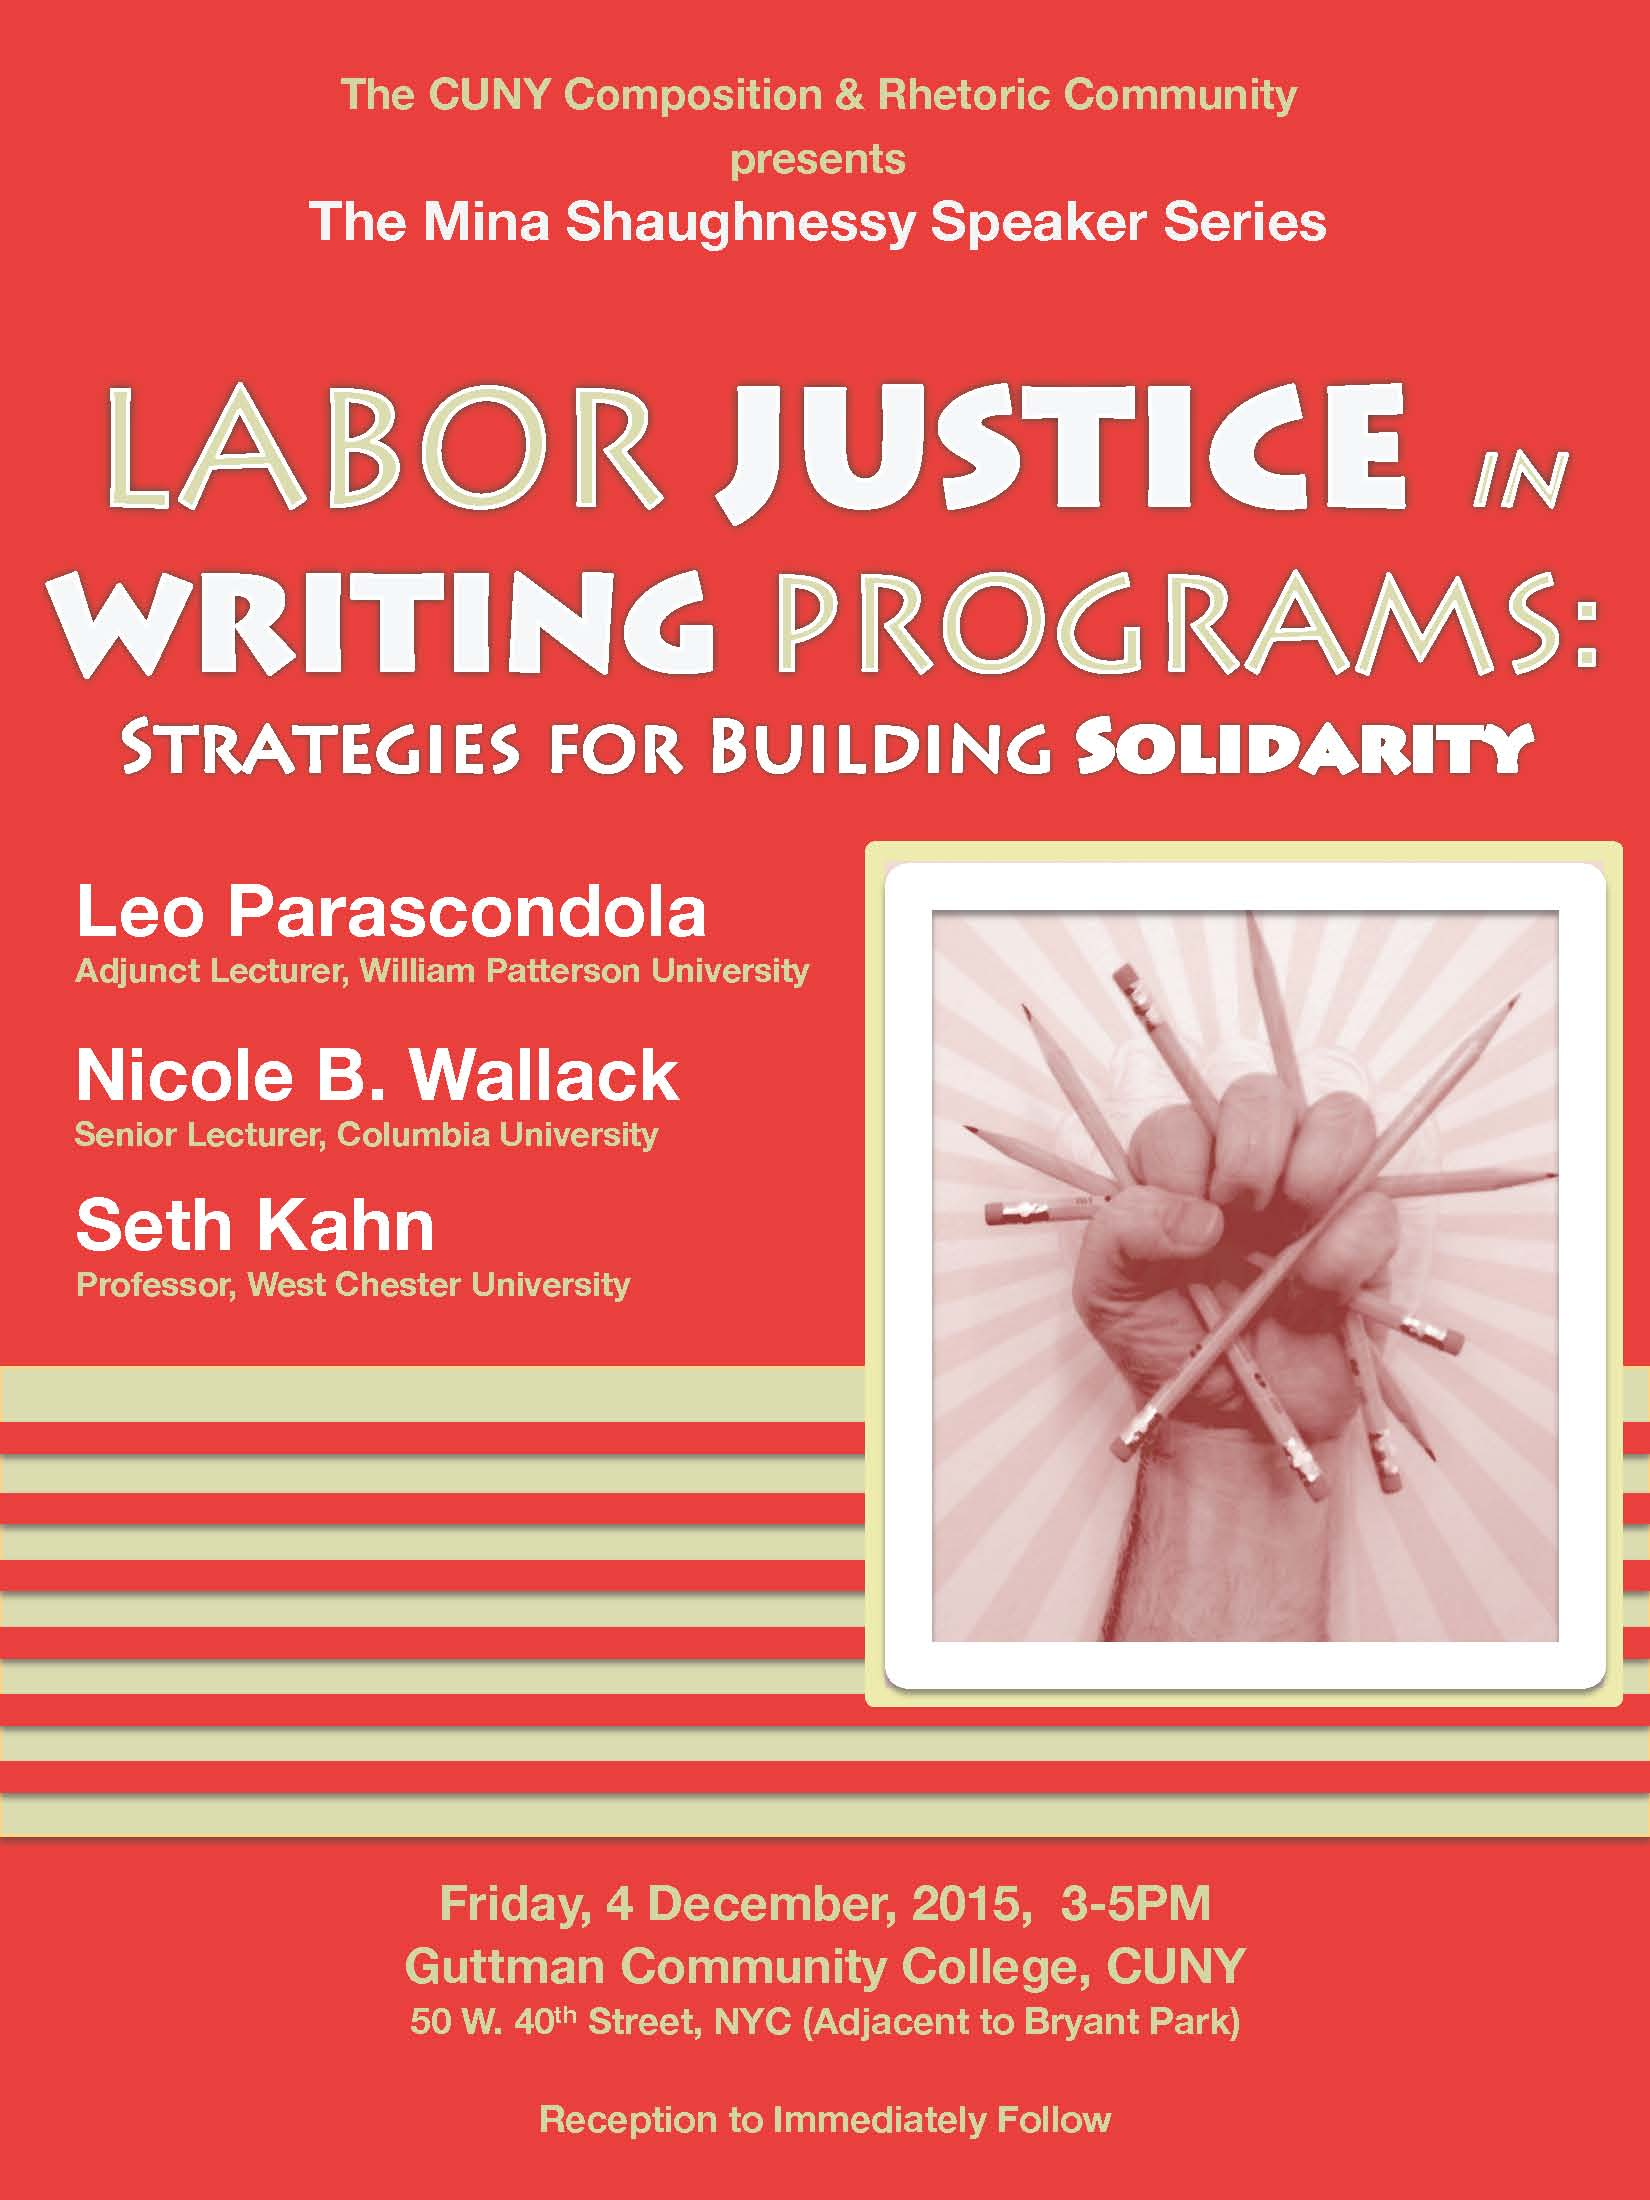 Labor Justice in Writing Programs: Strategies for Building Solidarity